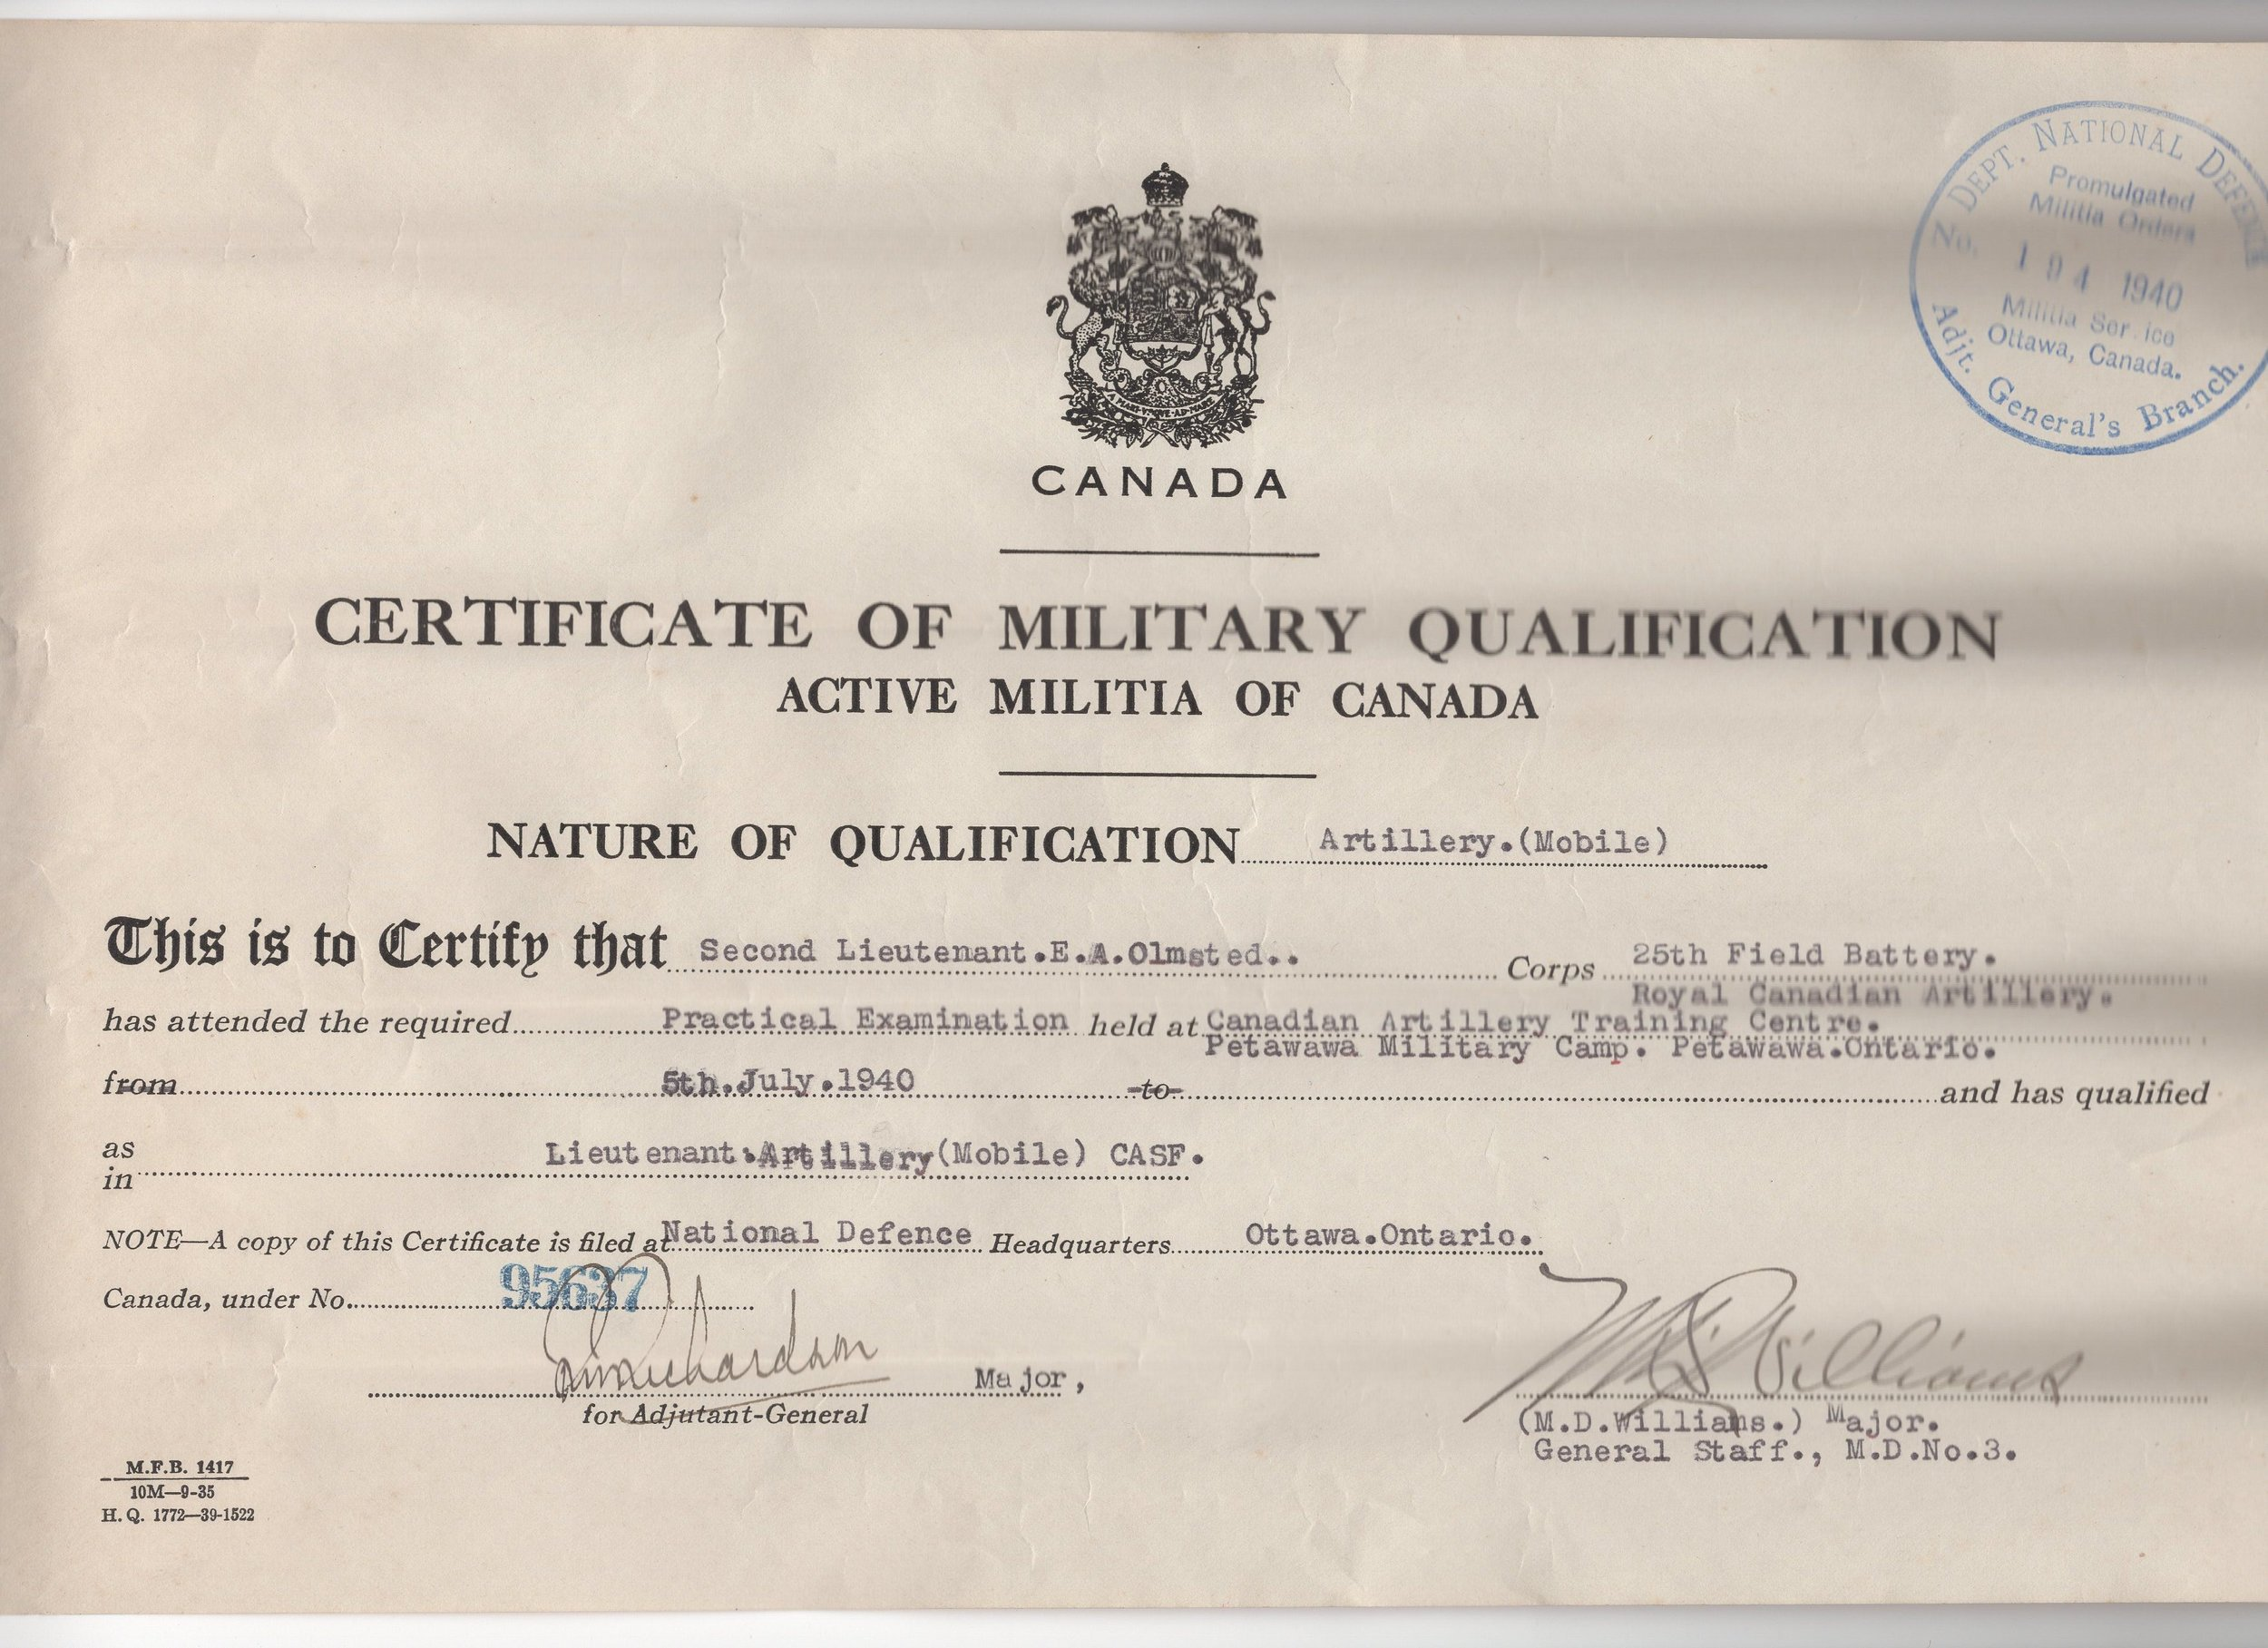 E. A. Omsted Certificate of Military Qualification.jpg